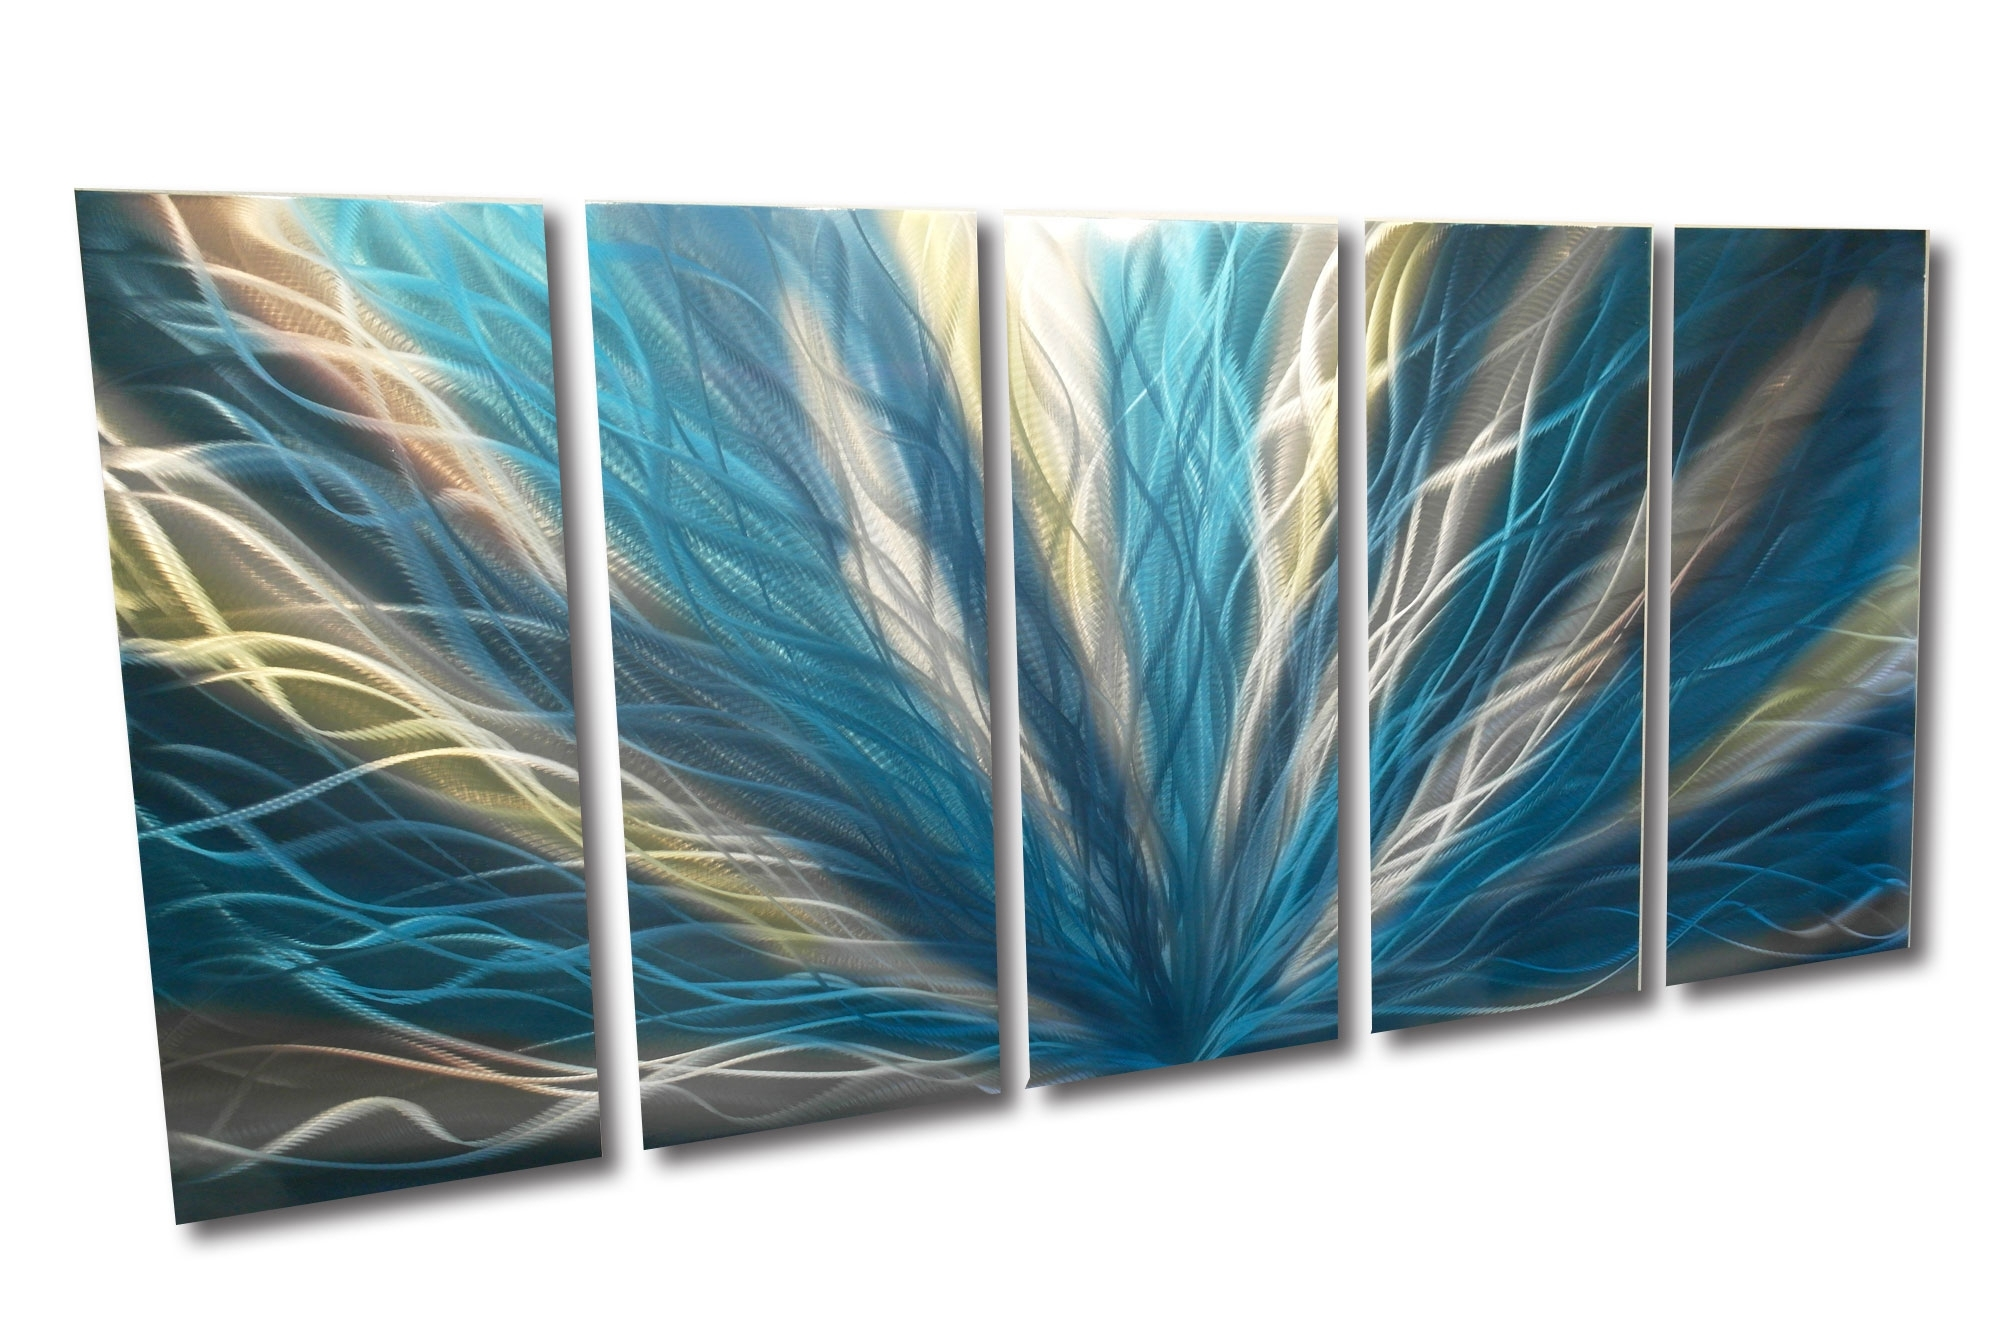 Radiance Teal 36X79 – Metal Wall Art Abstract Sculpture Modern Decor Pertaining To Current Teal And Brown Wall Art (Gallery 6 of 20)